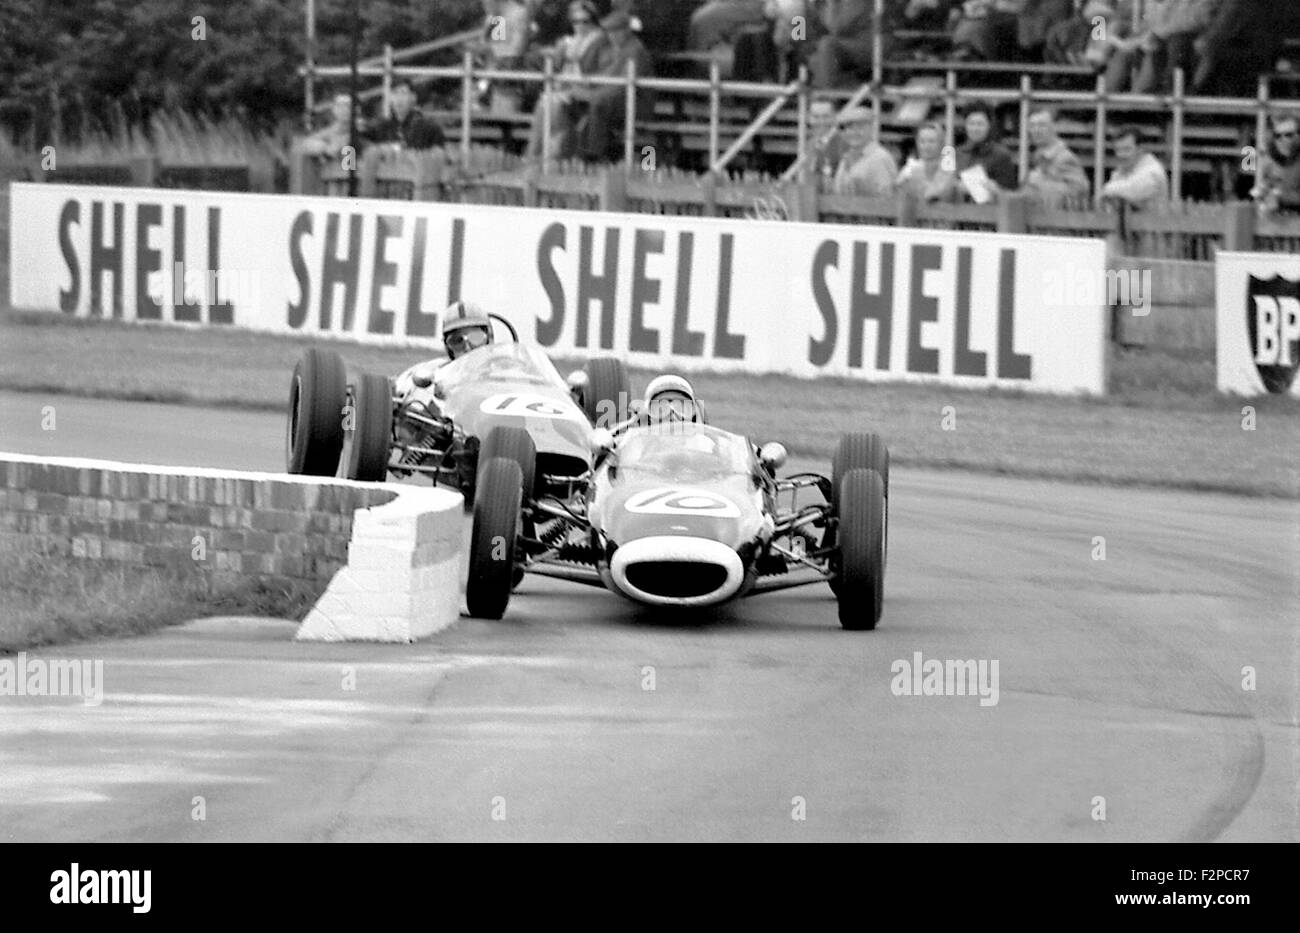 Richard Attwood in a Lola and Frank Gardner in a Brabham in a Formula Junior race Goodwood 1963 - Stock Image